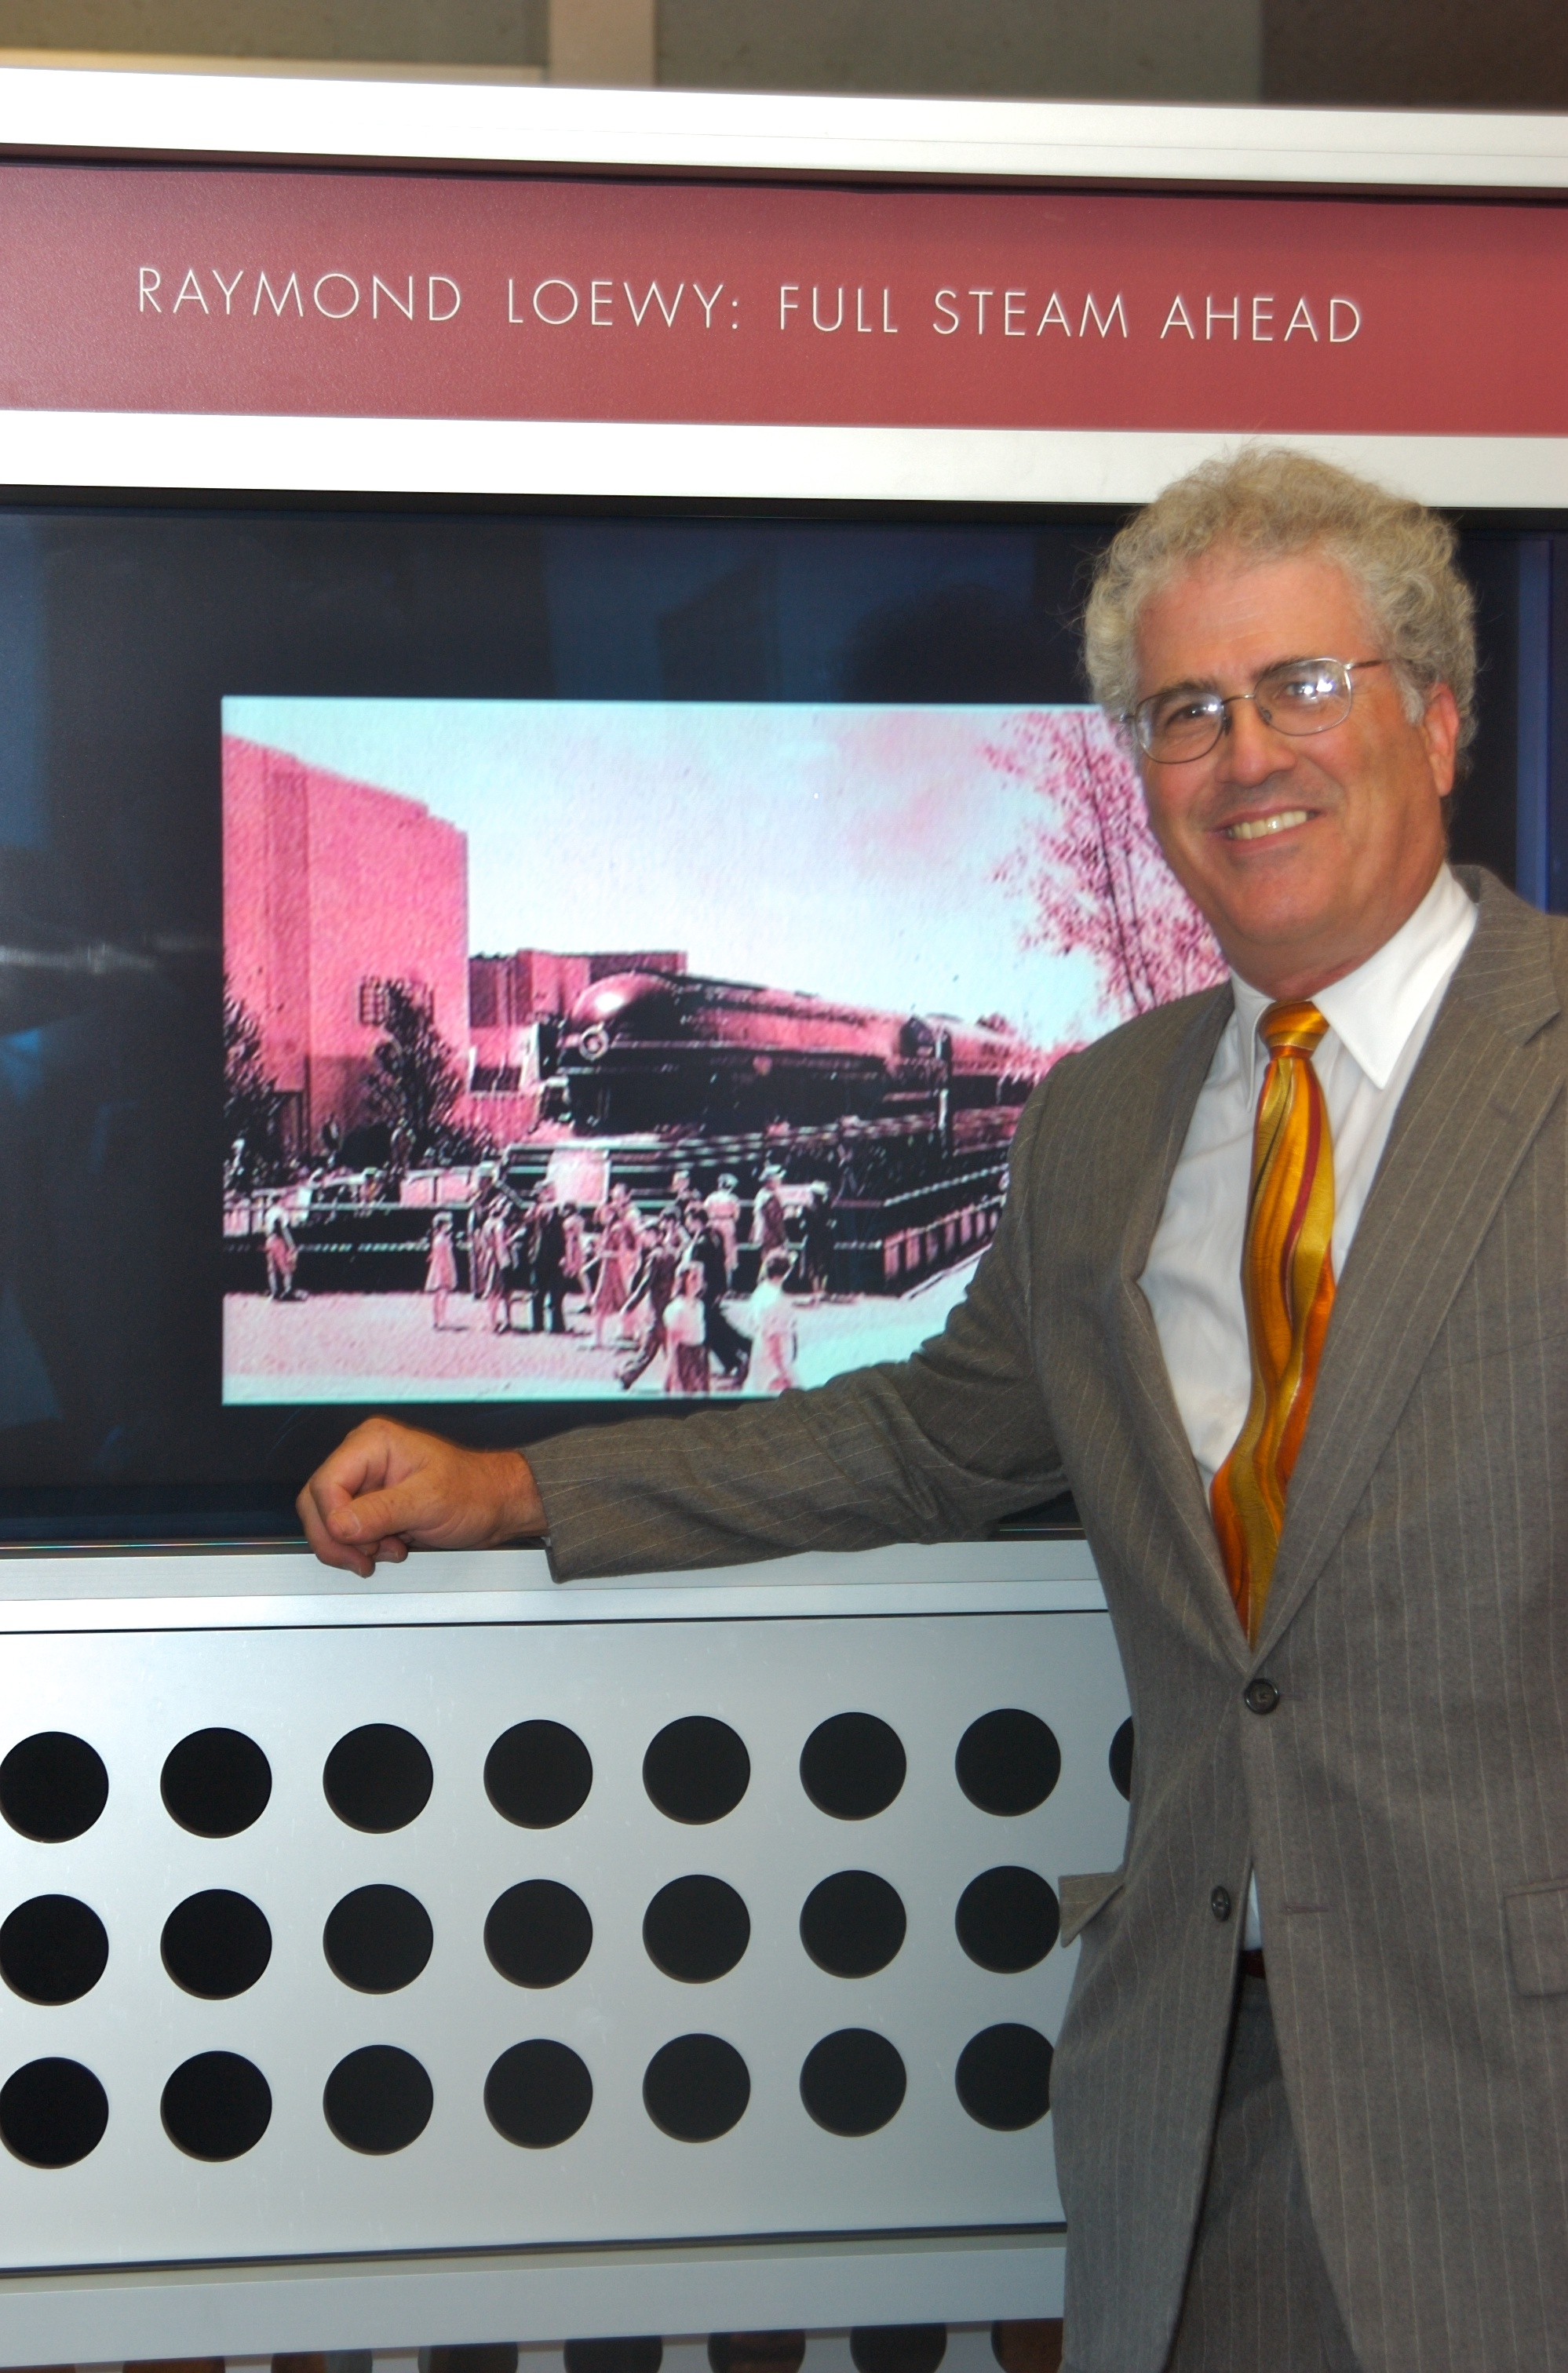 Ross at the opening of the film Raymond Loewy Loved locomotives